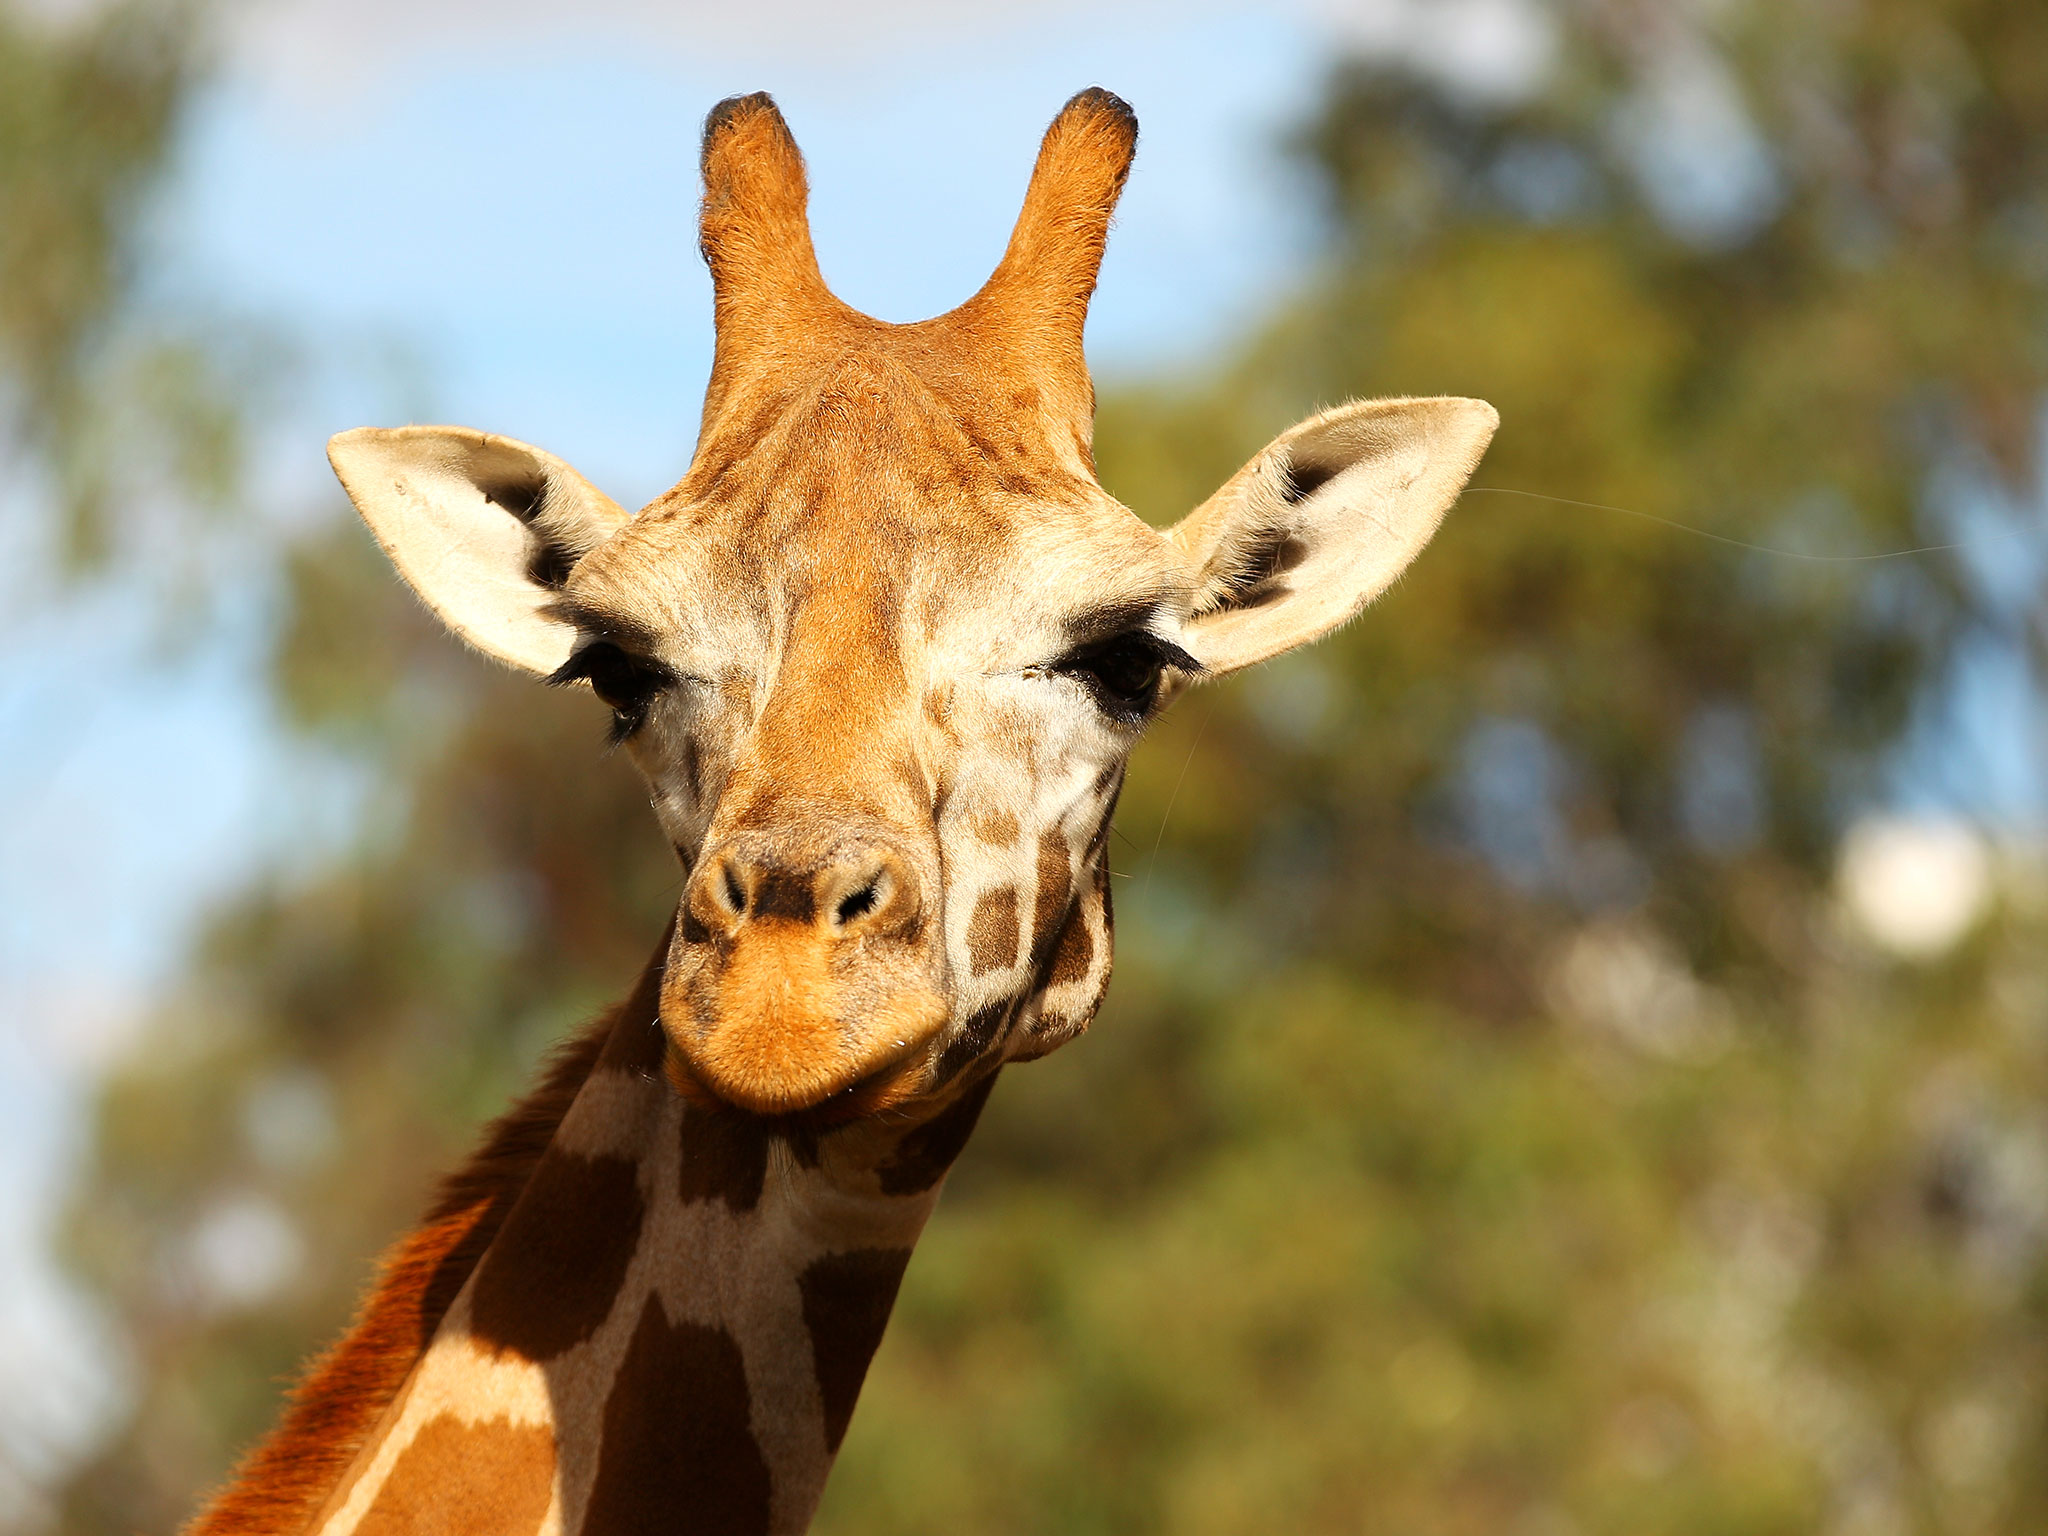 Owner of giraffe killed after hitting head on bridge in South Africa 'could face action' - Africa - World - The Independent